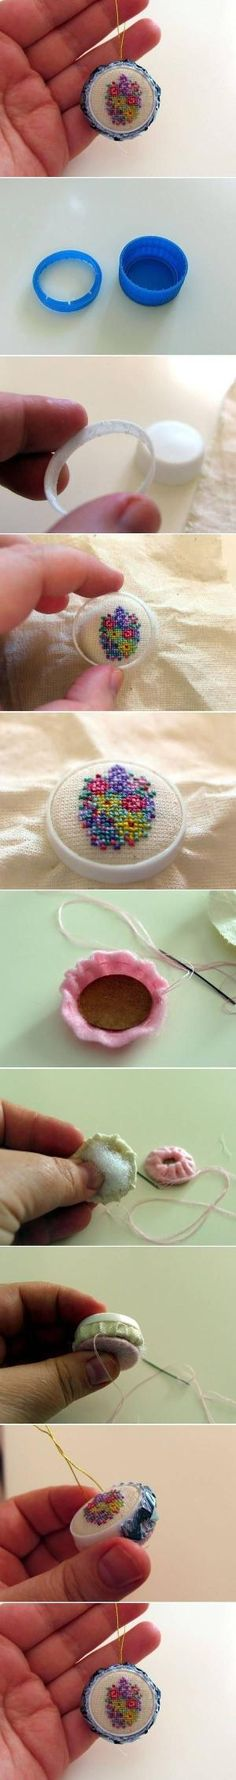 DIY Bottle Cap Ornament DIY Bottle Cap Ornament by Patricia Lopez J3hmk